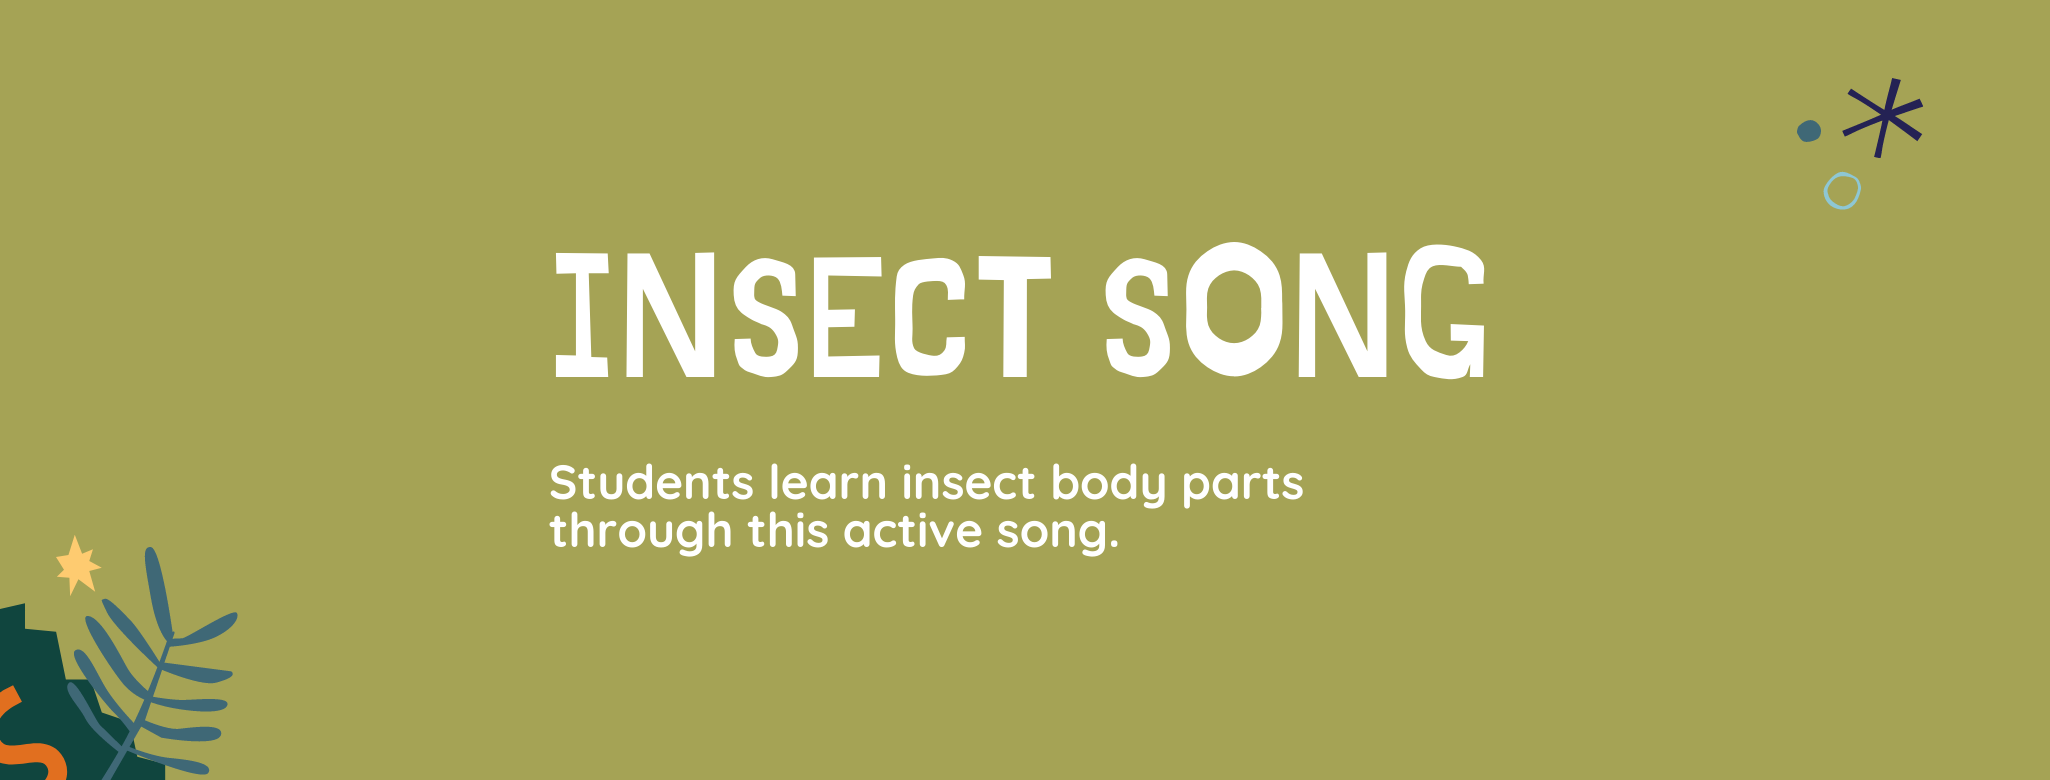 Insect Song